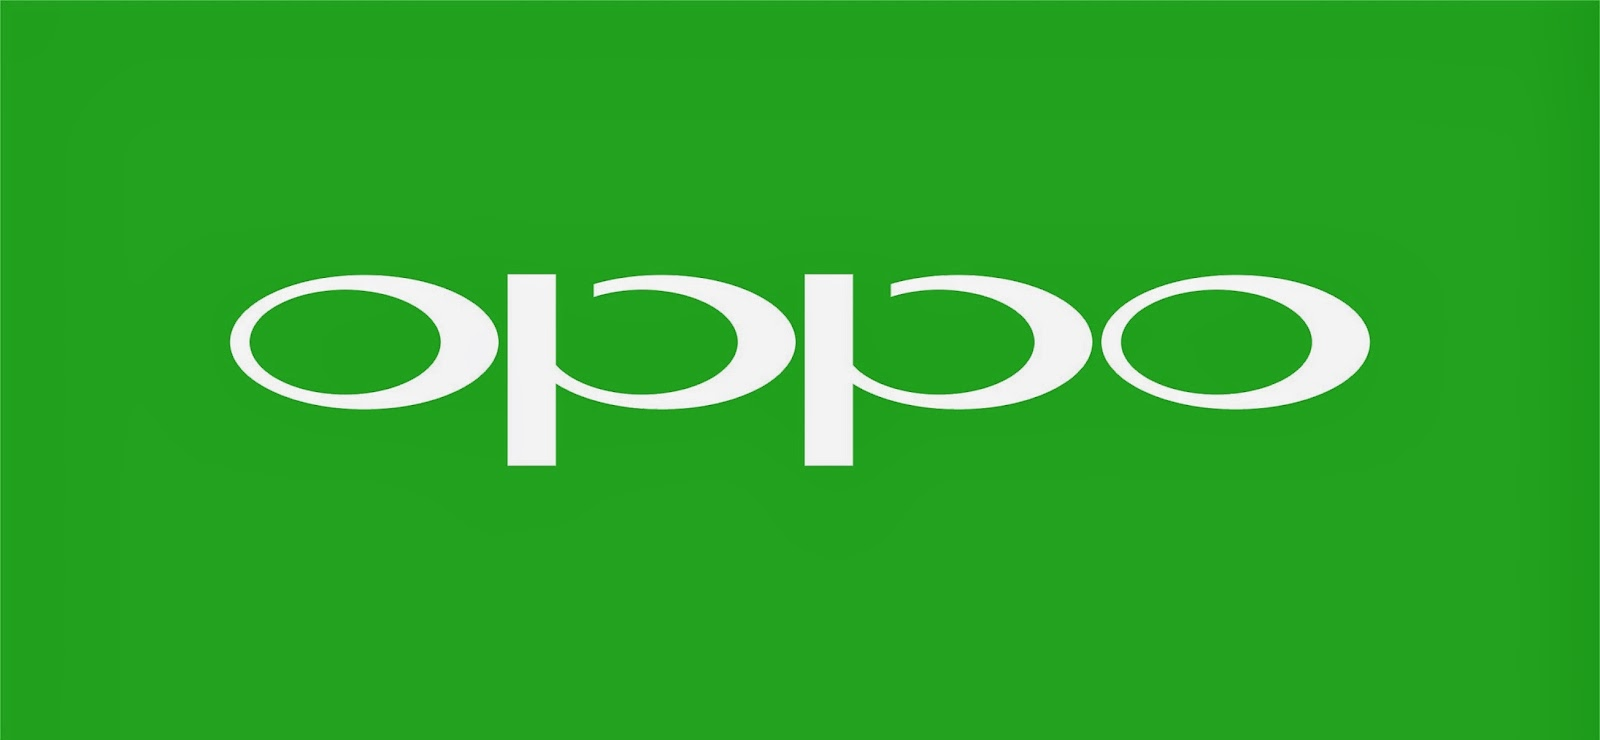 This virtual Oppo logo has become a distraction to the PBA games on TV5. (Logo courtesy of Oppo)